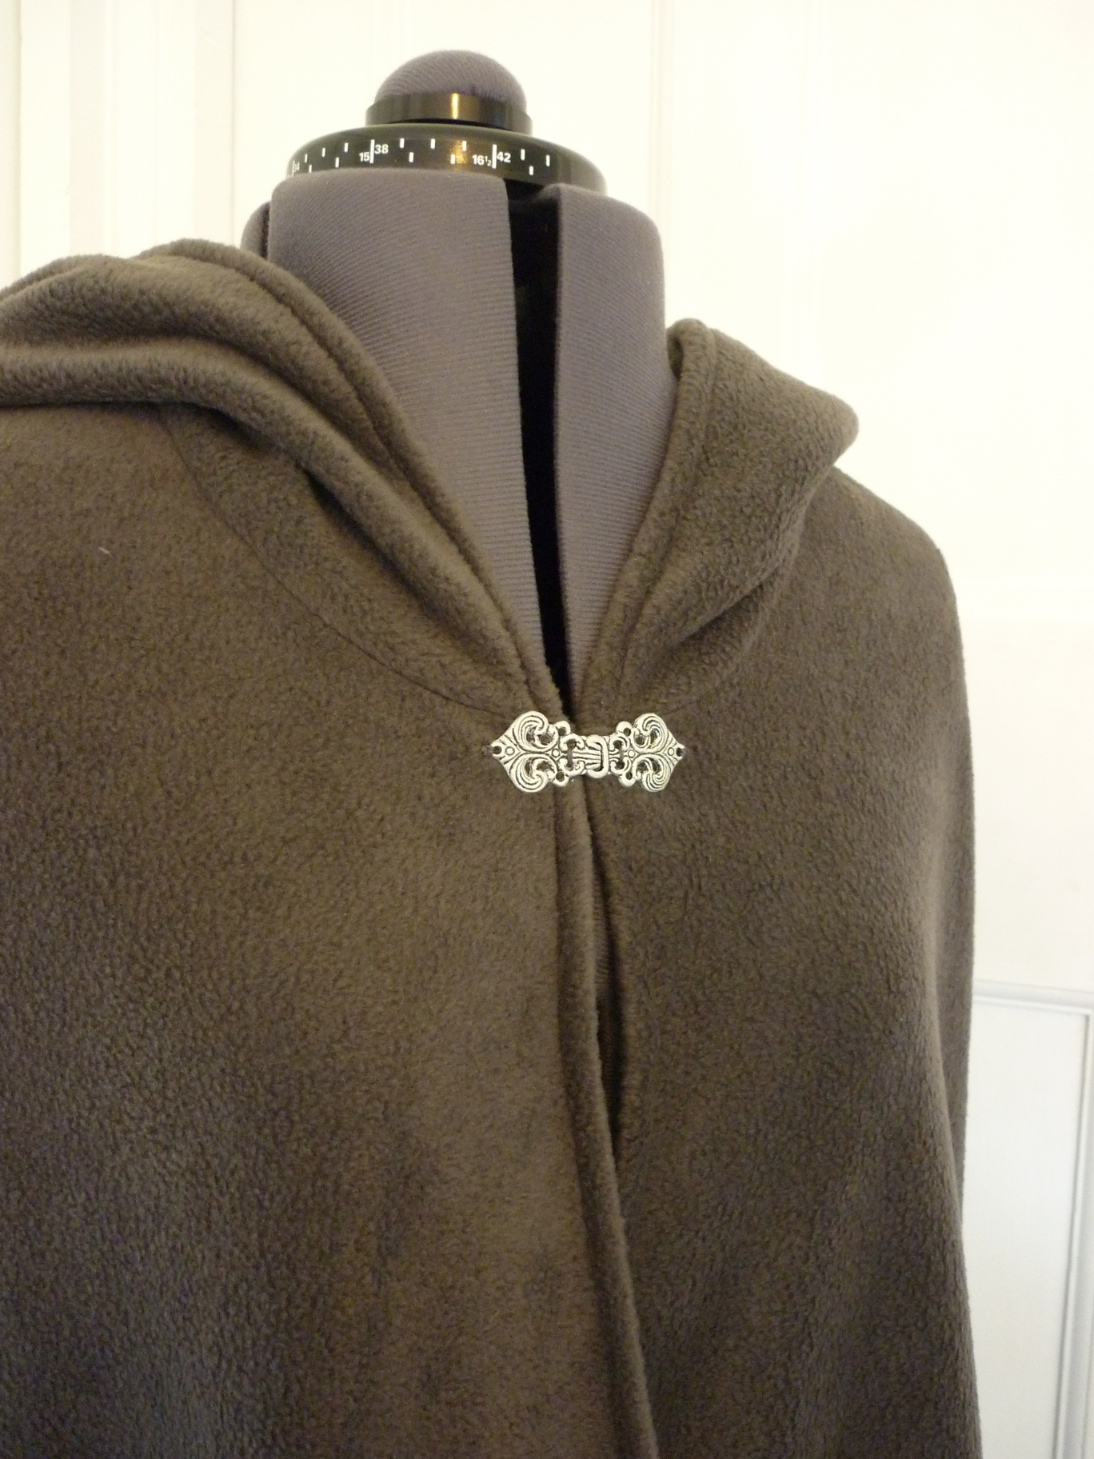 Full-length unlined fleece cloak - round hood - choice of colours - made to order